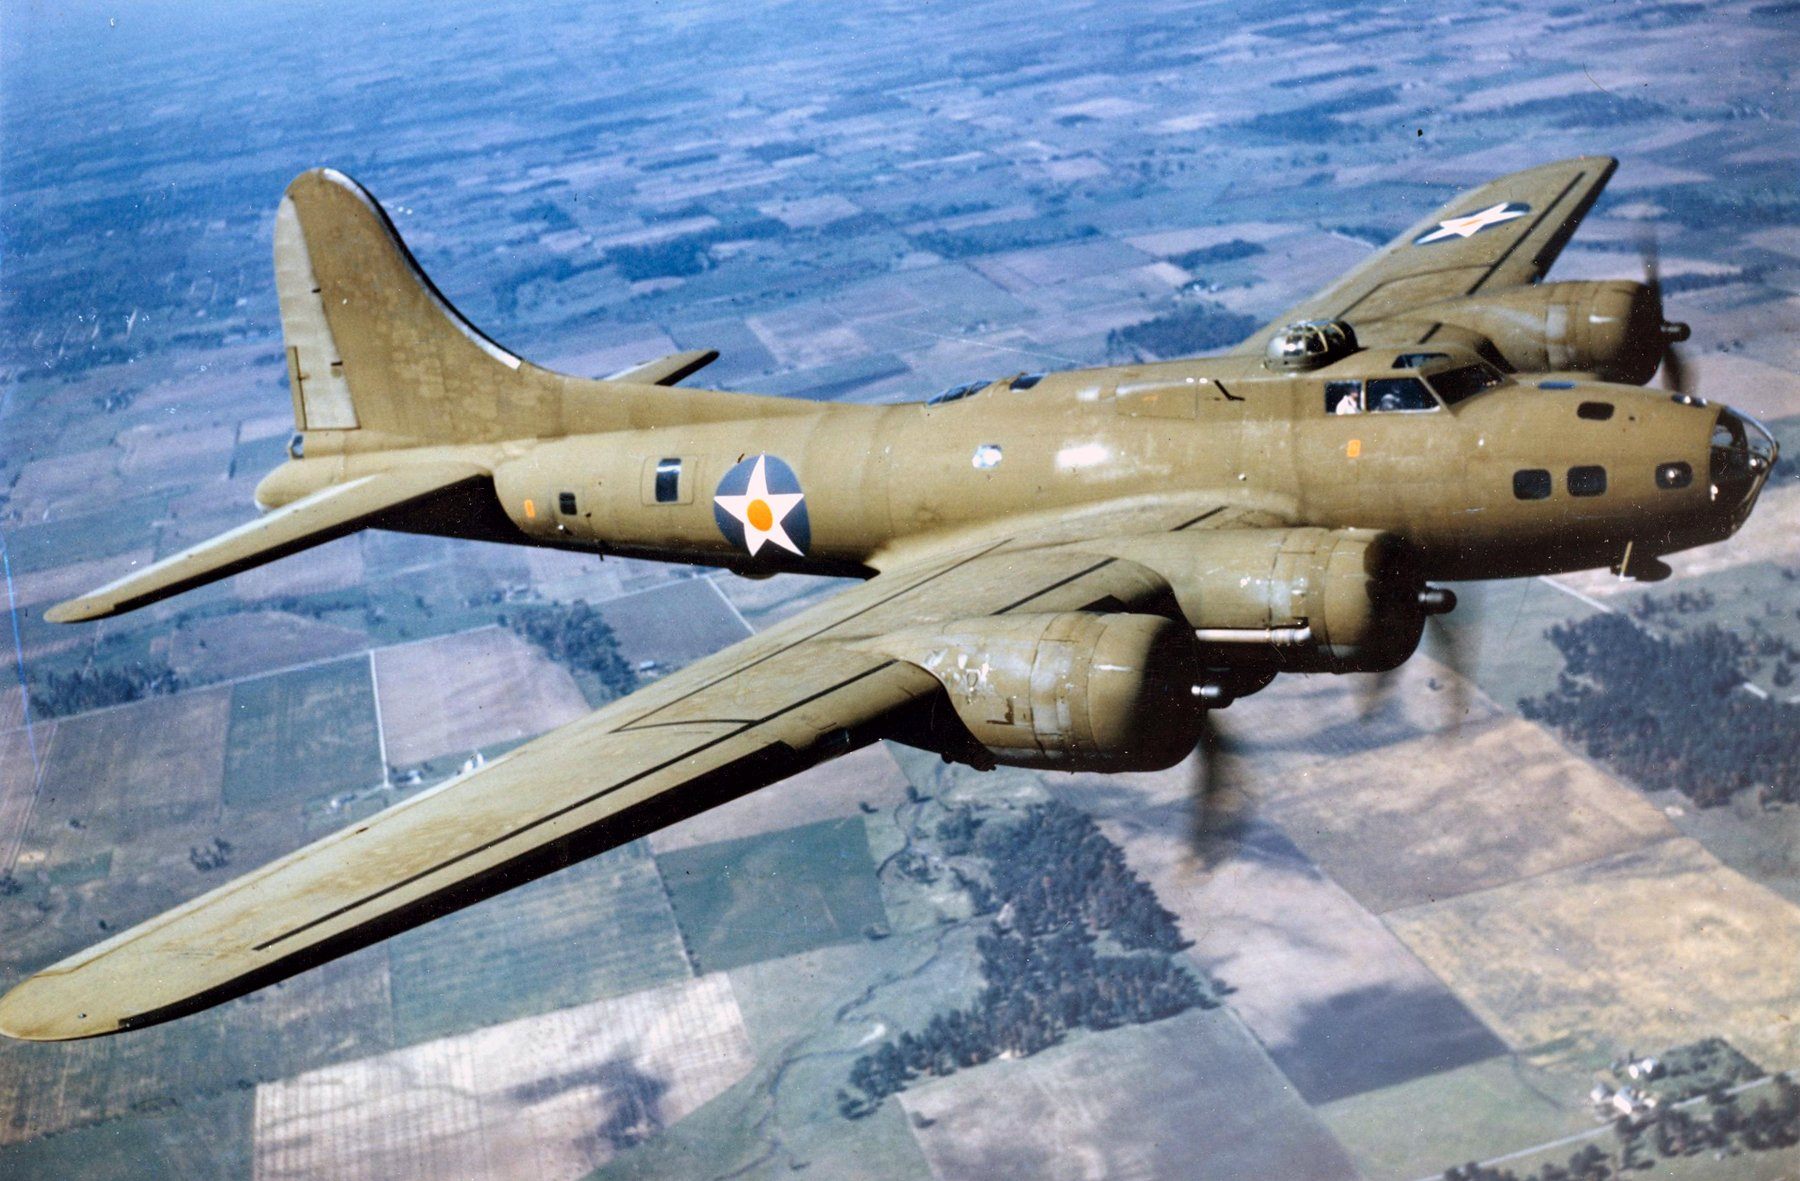 Military - Boeing B-17 Flying Fortress  Aircraft Air Force Airplane Military Wallpaper